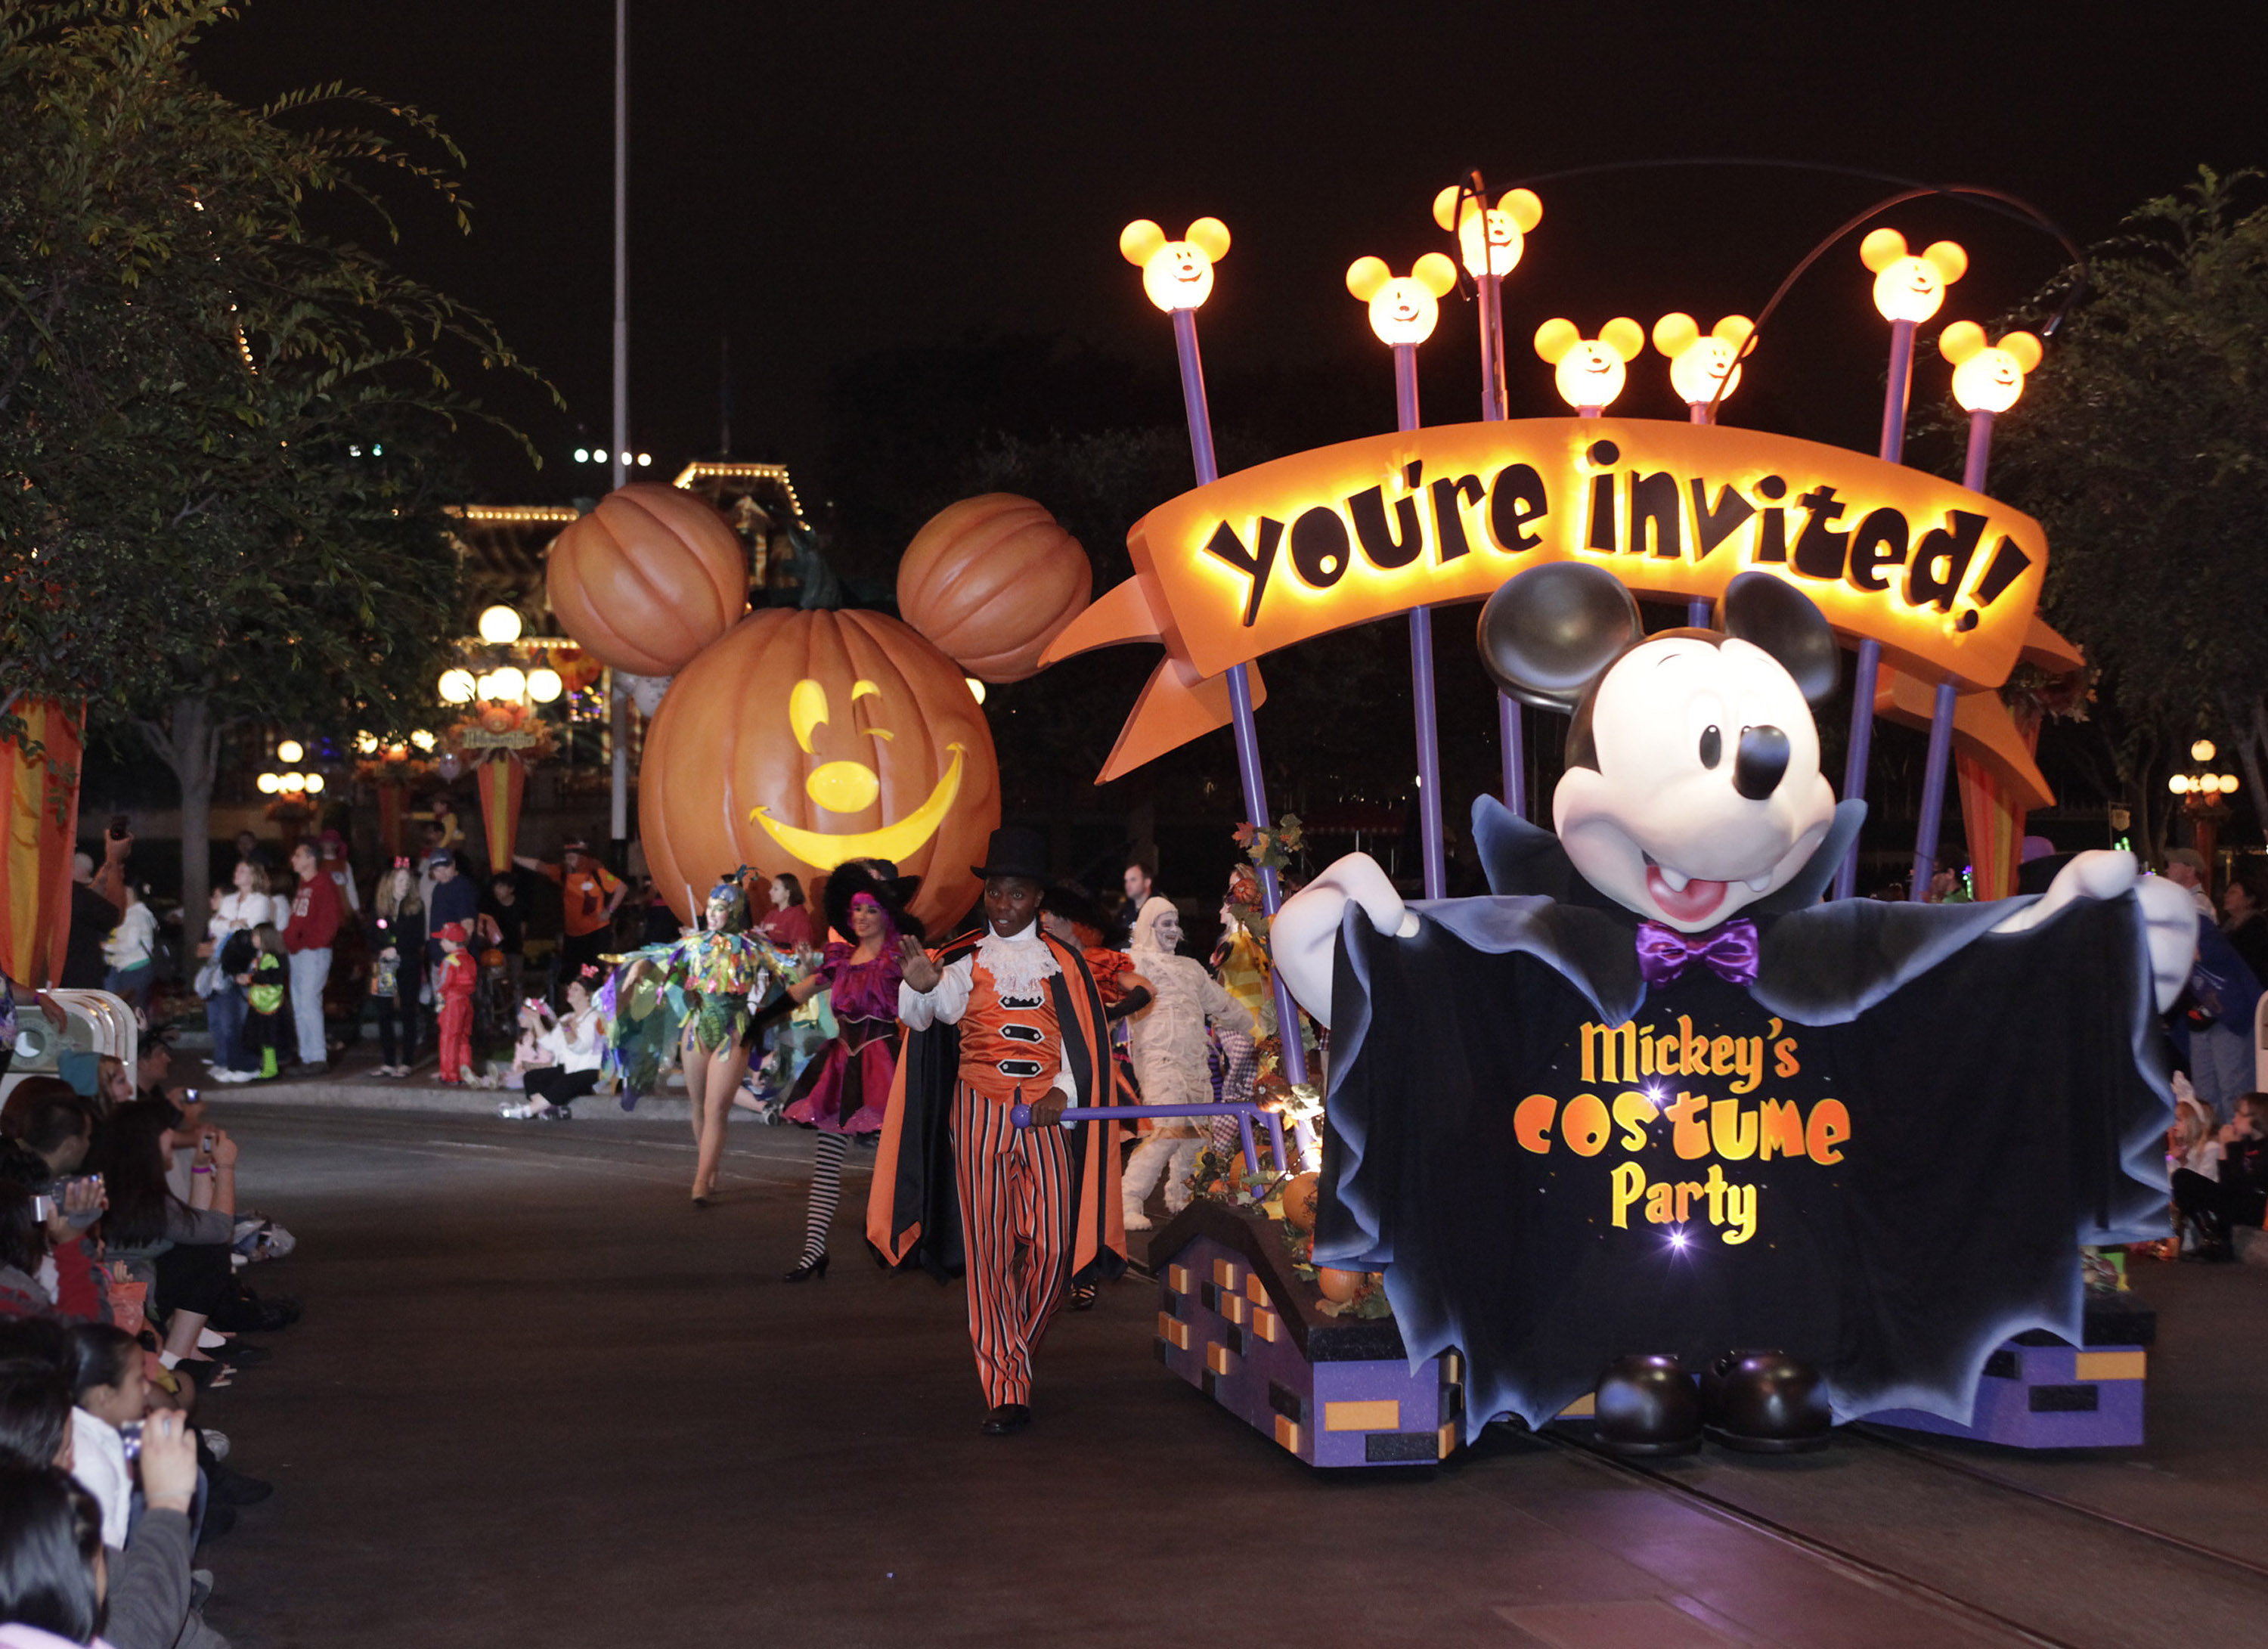 mickeys halloween party parade in disneyland - When Does Disneyland Decorate For Halloween